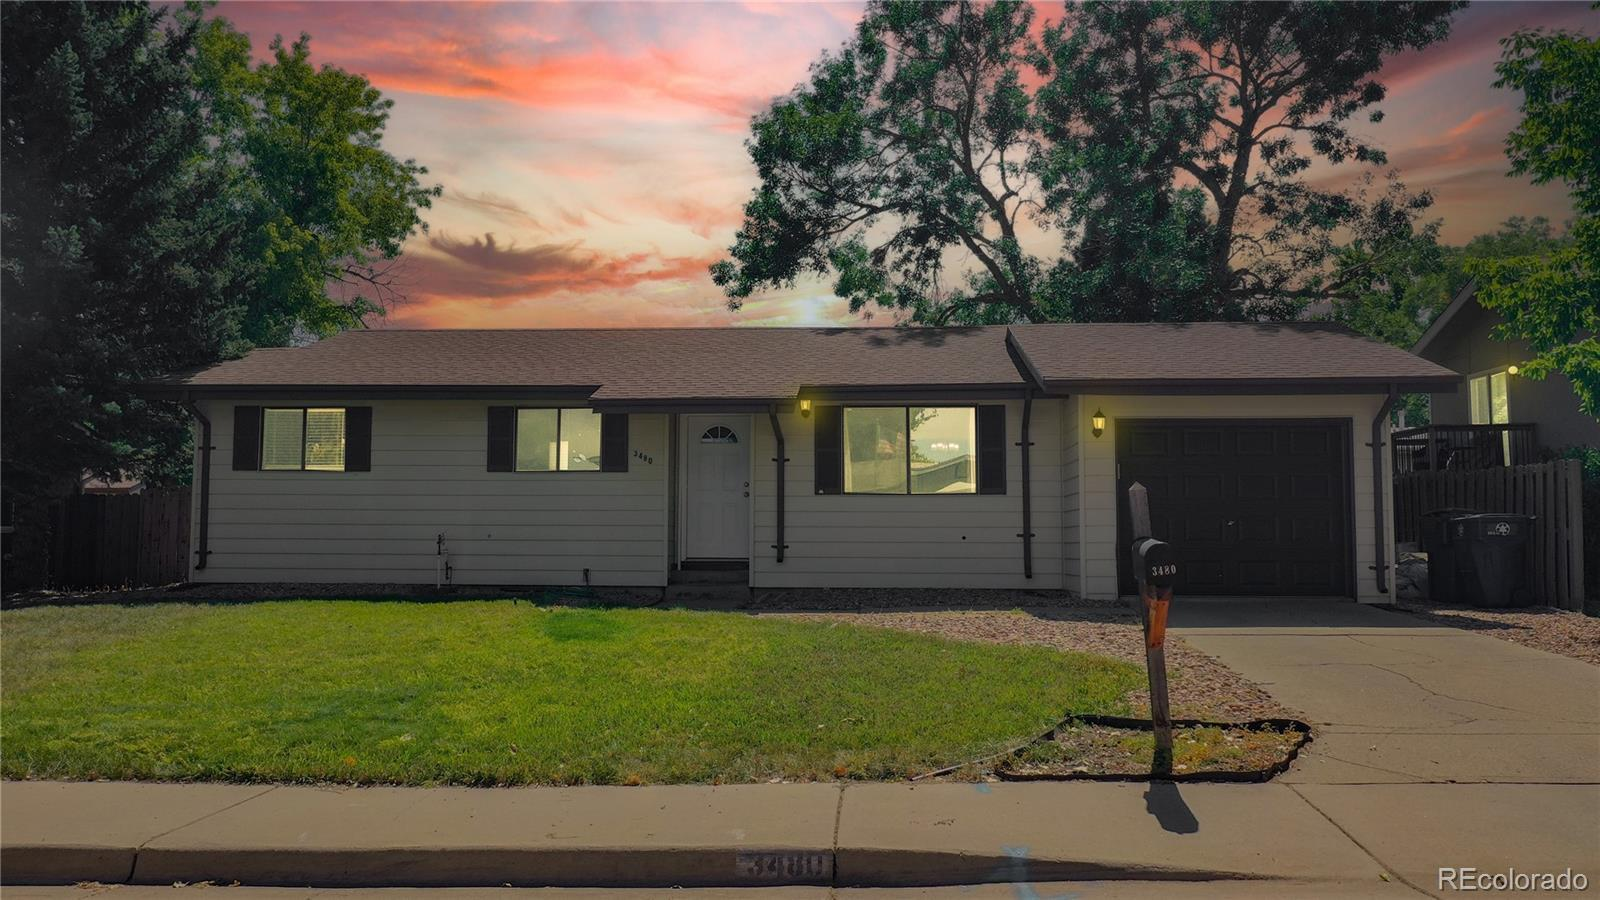 3480 W 132nd Place, Broomfield, CO 80020 - #: 5723940